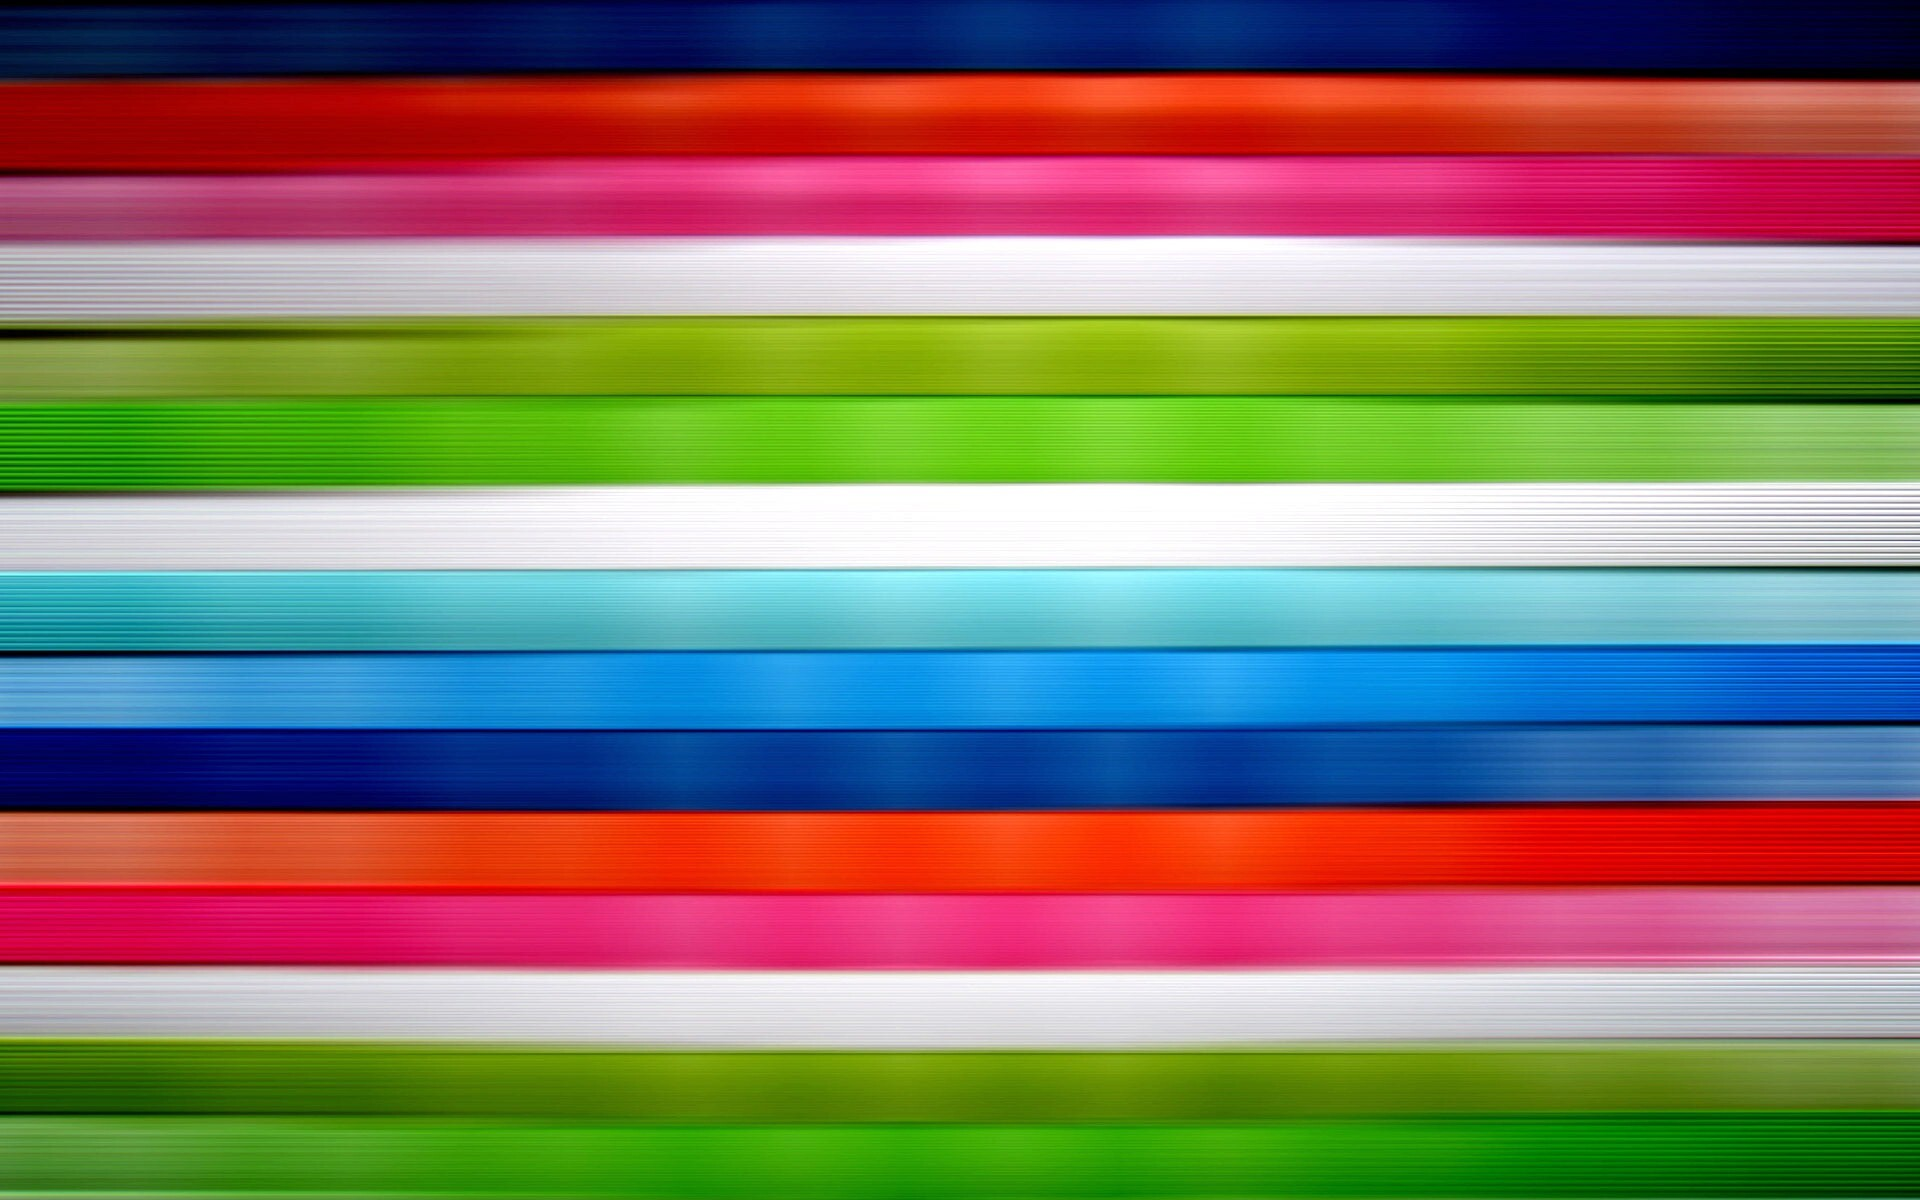 Abstract Colorful Lines Hd Wallpapers Background Hd Wallpapers